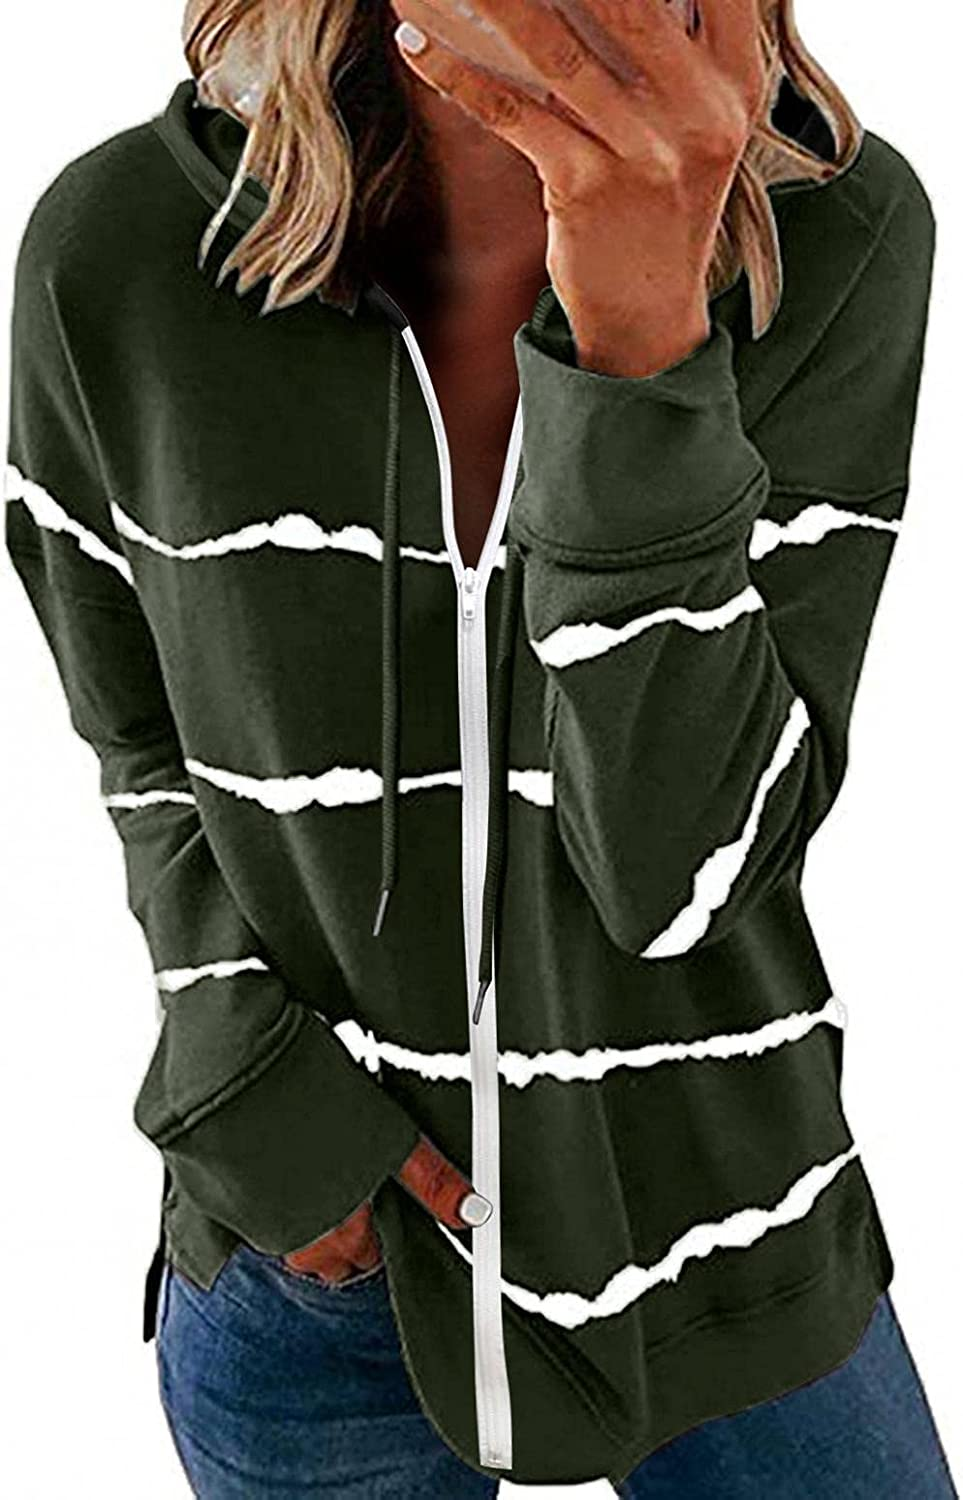 ONHUON Womens Long Sleeve Tops Loose Fit, Oversized Sweatshirt for Women Vintage Graphic Long Sleeve Casual Loose Crewneck Pullover Sweaters Tops Shirts Army Green